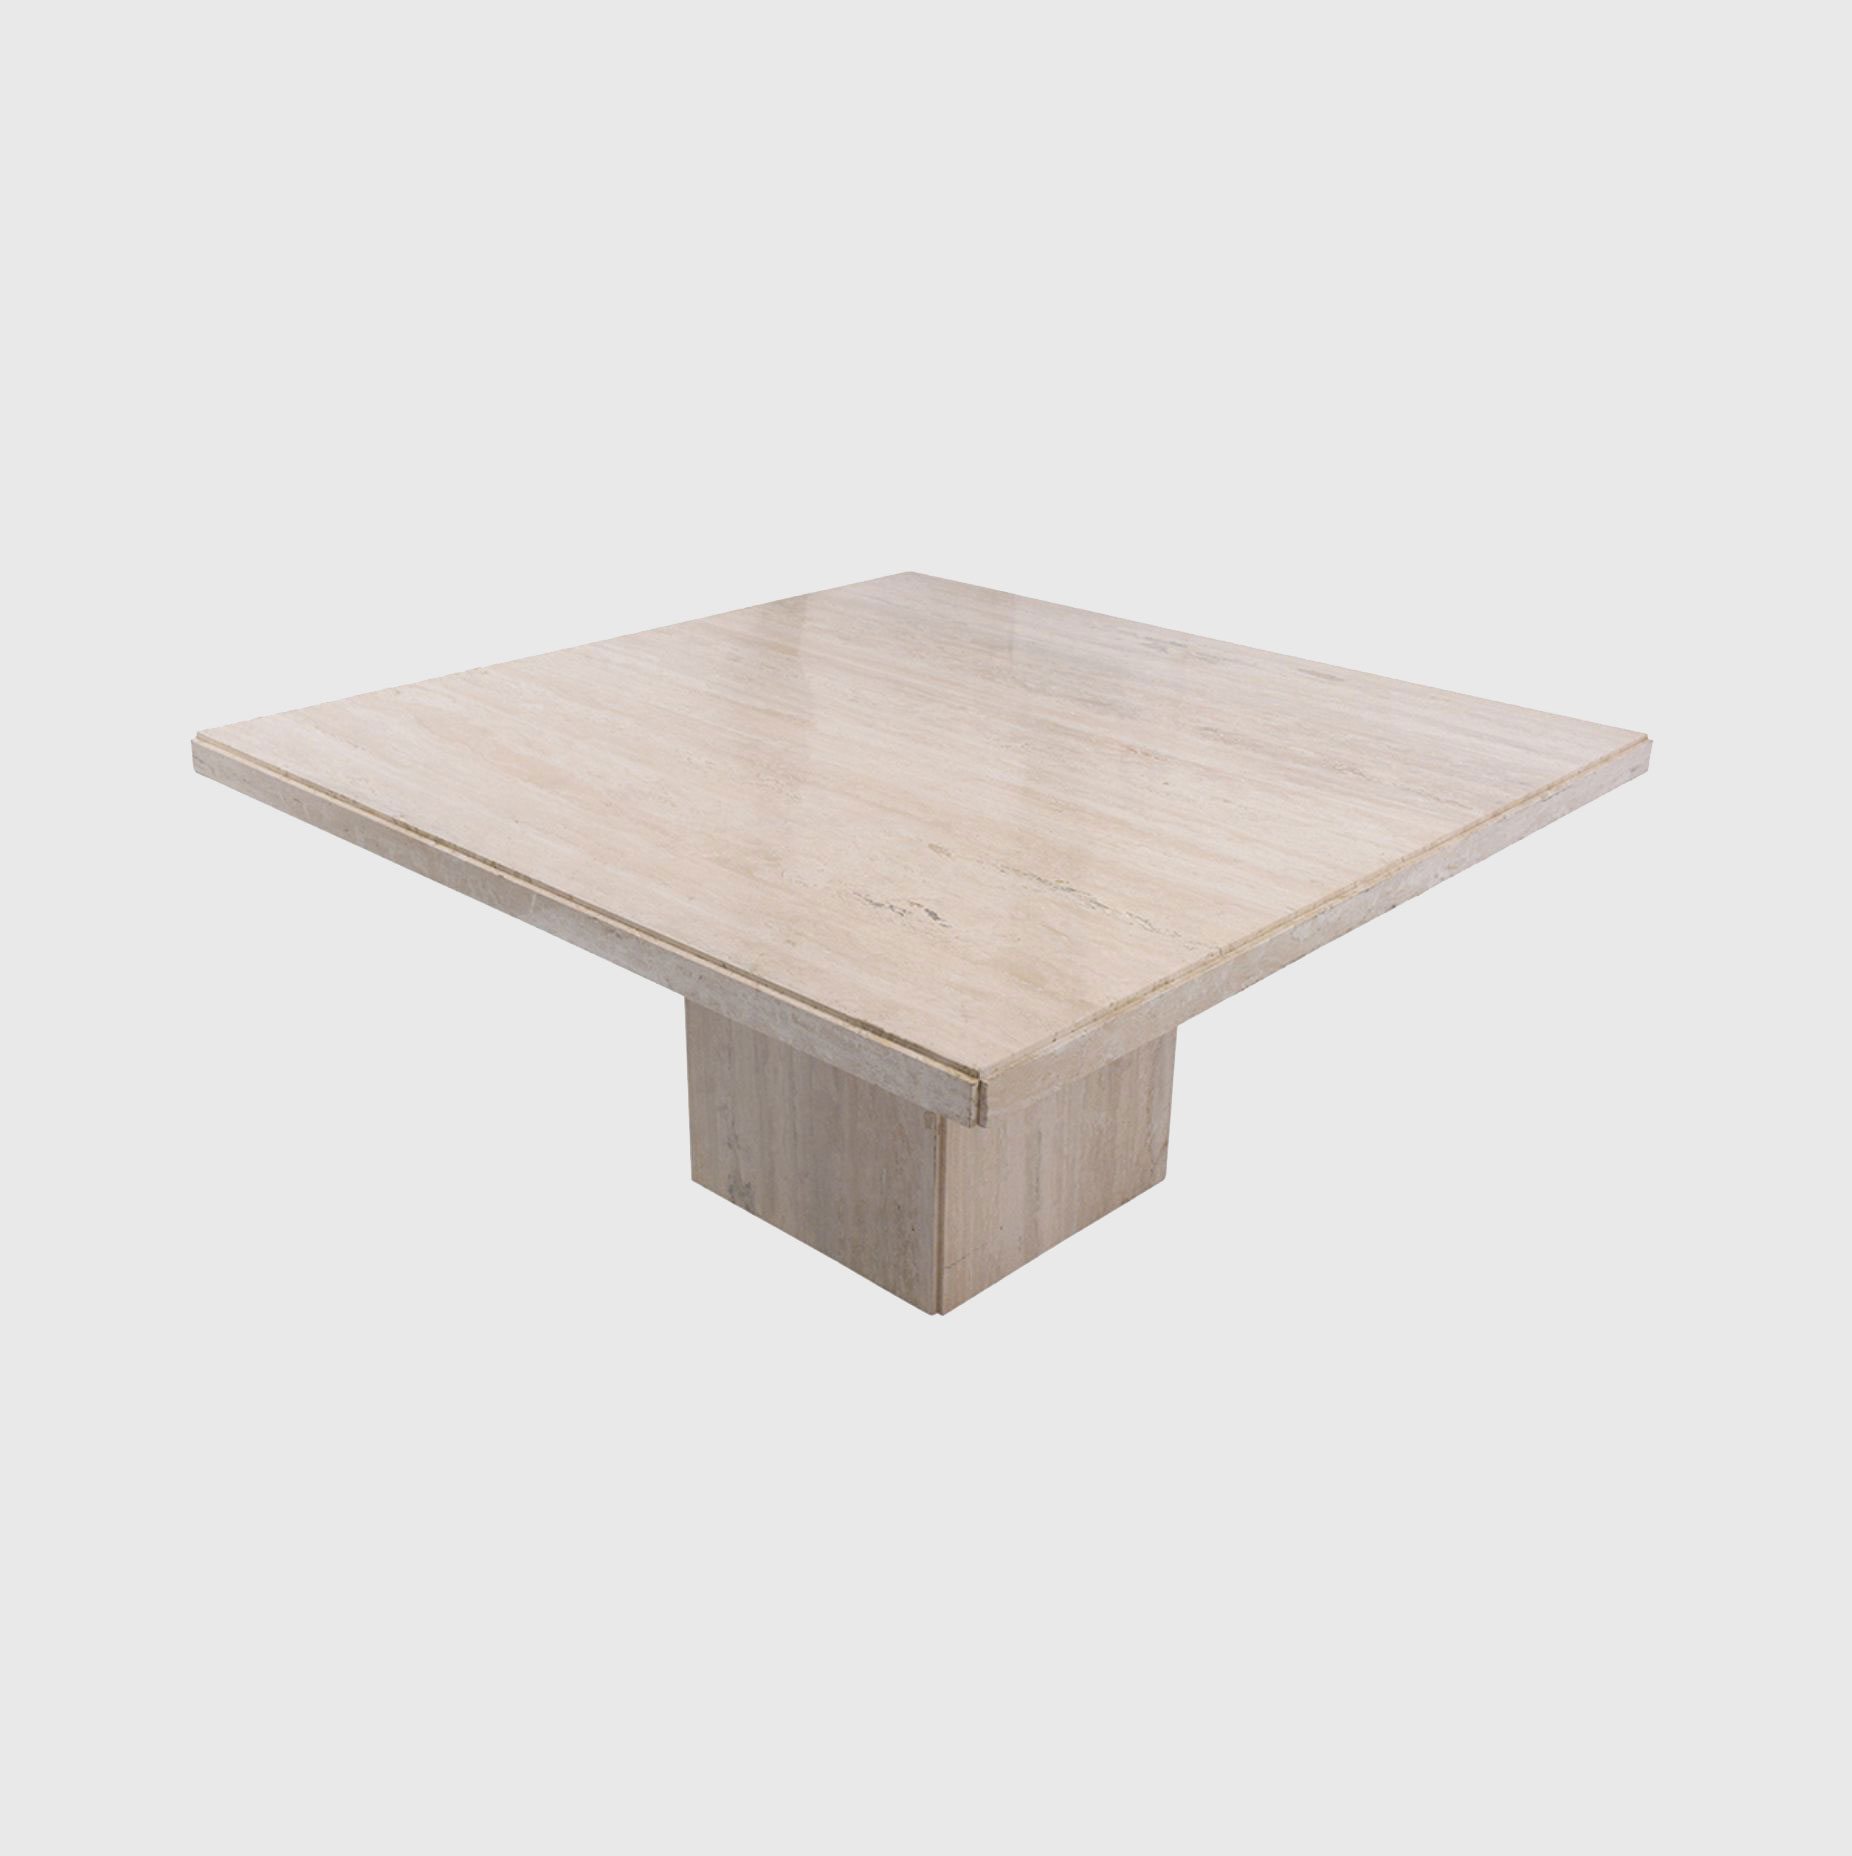 Tables-c-9673